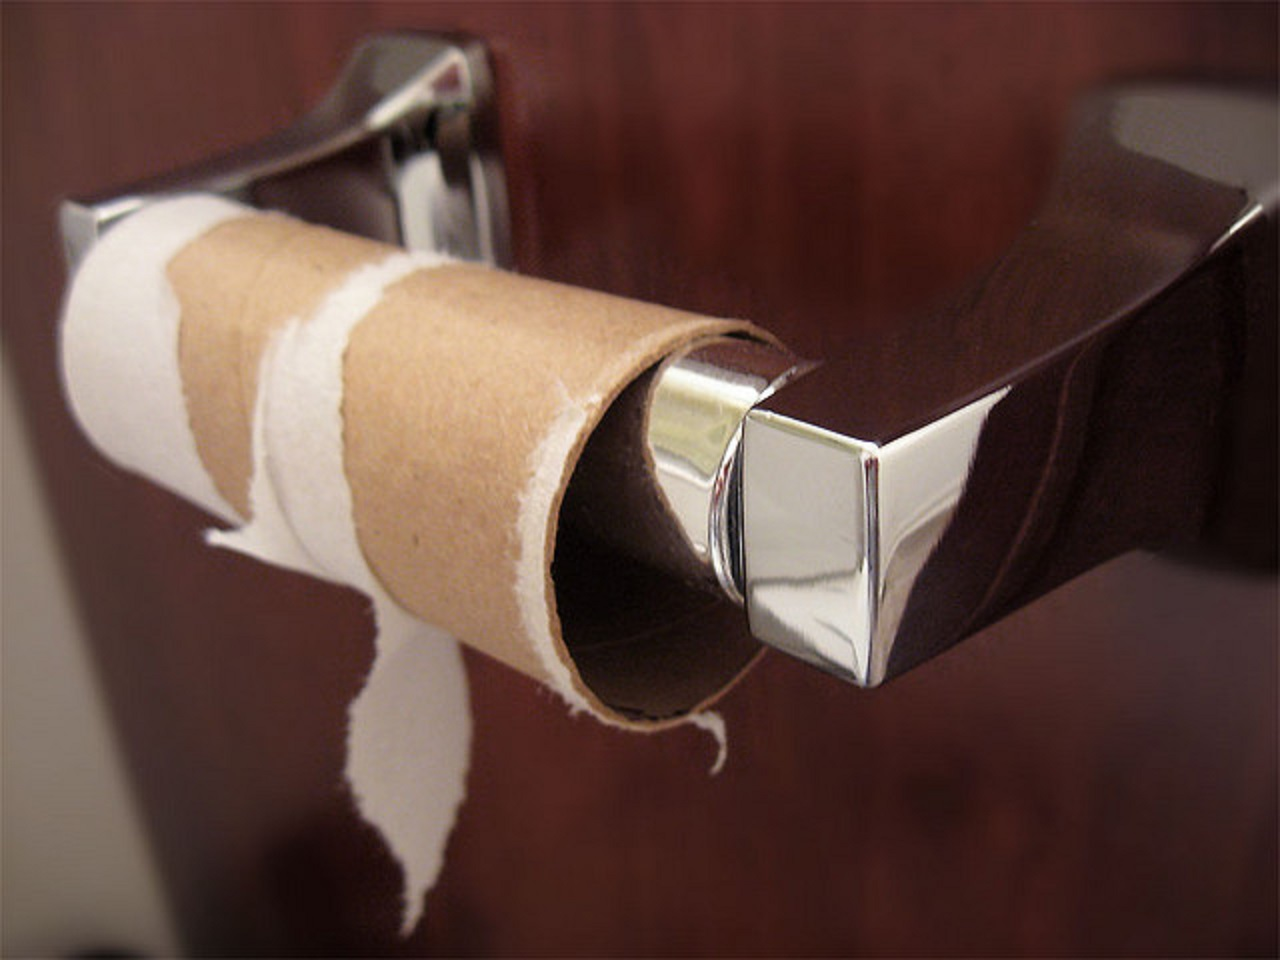 10 Unconventional Ways To Use Old Paper Towel And Toilet Paper Rolls Around The House One Green Planet